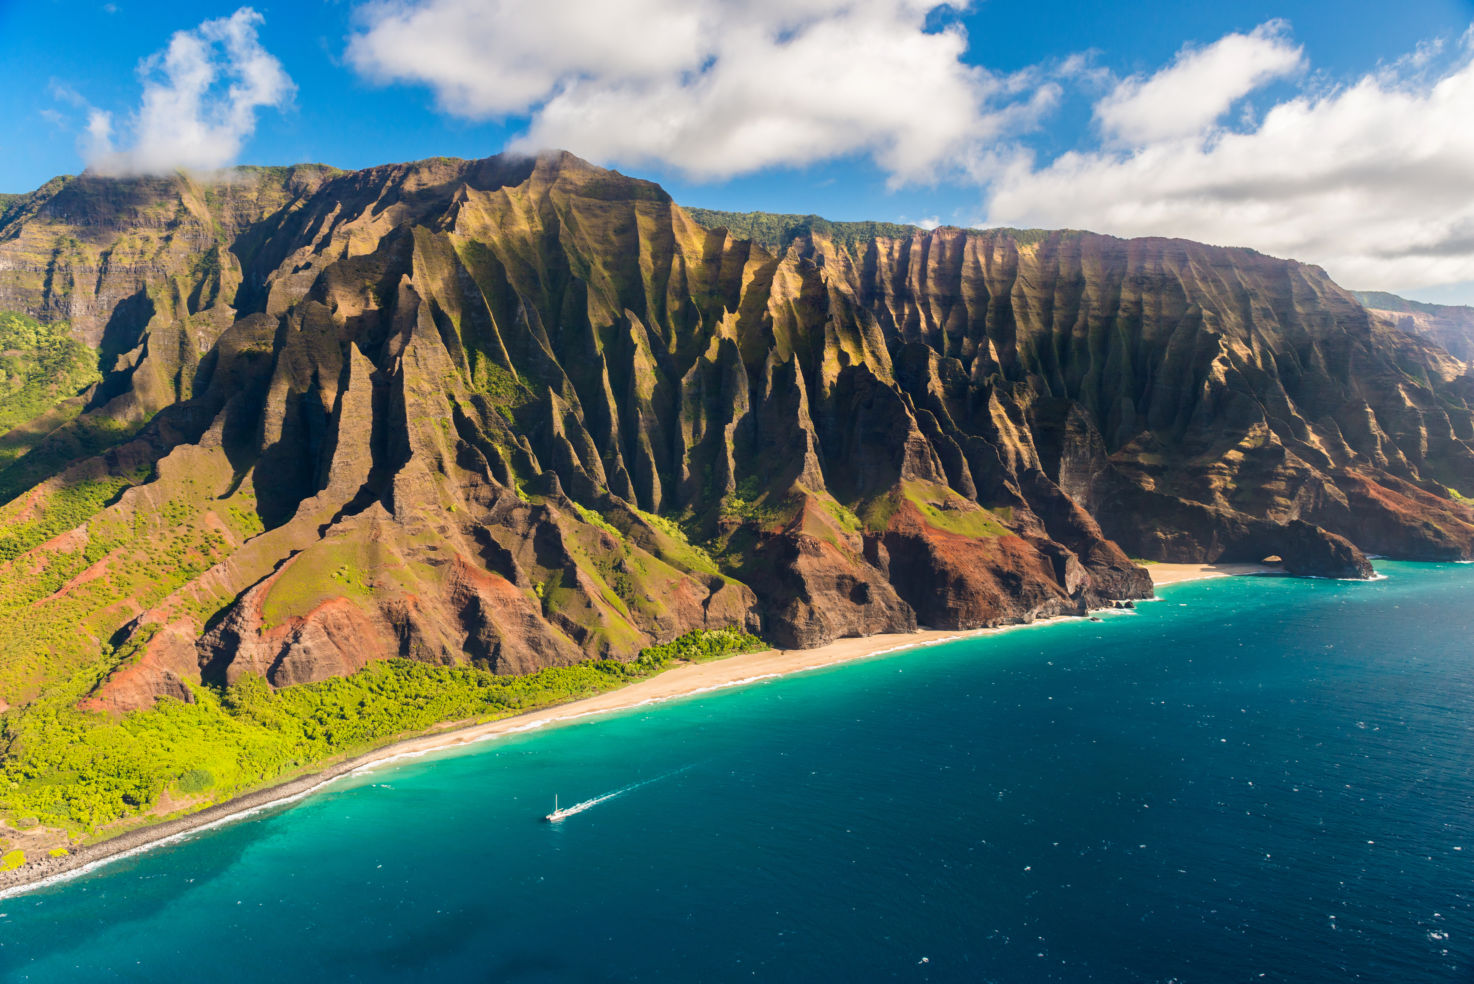 Na Pali coastline in Hawaii on the island of Kauai